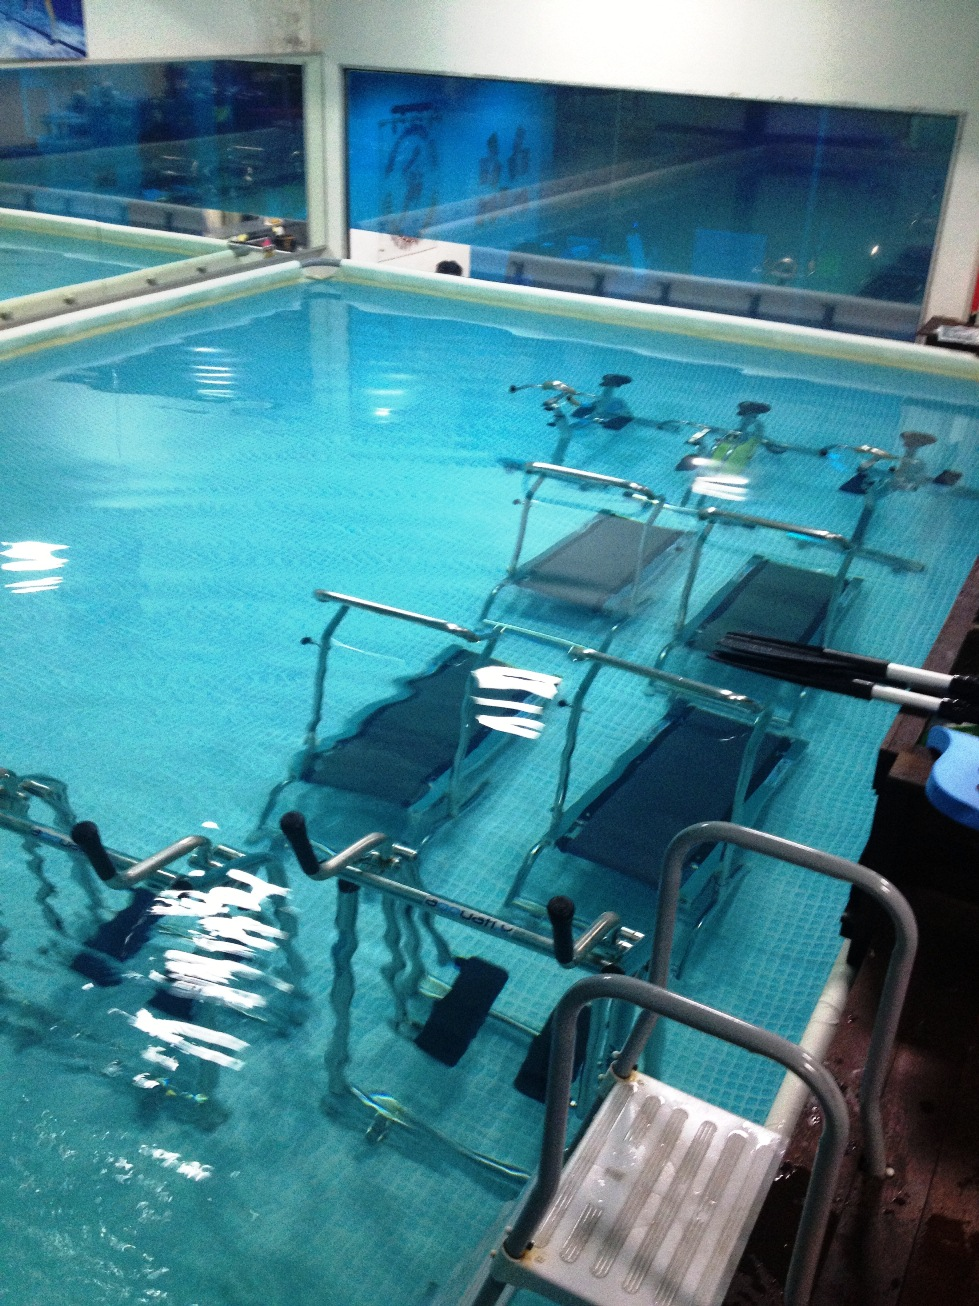 the 'gym' equipments of the watergym